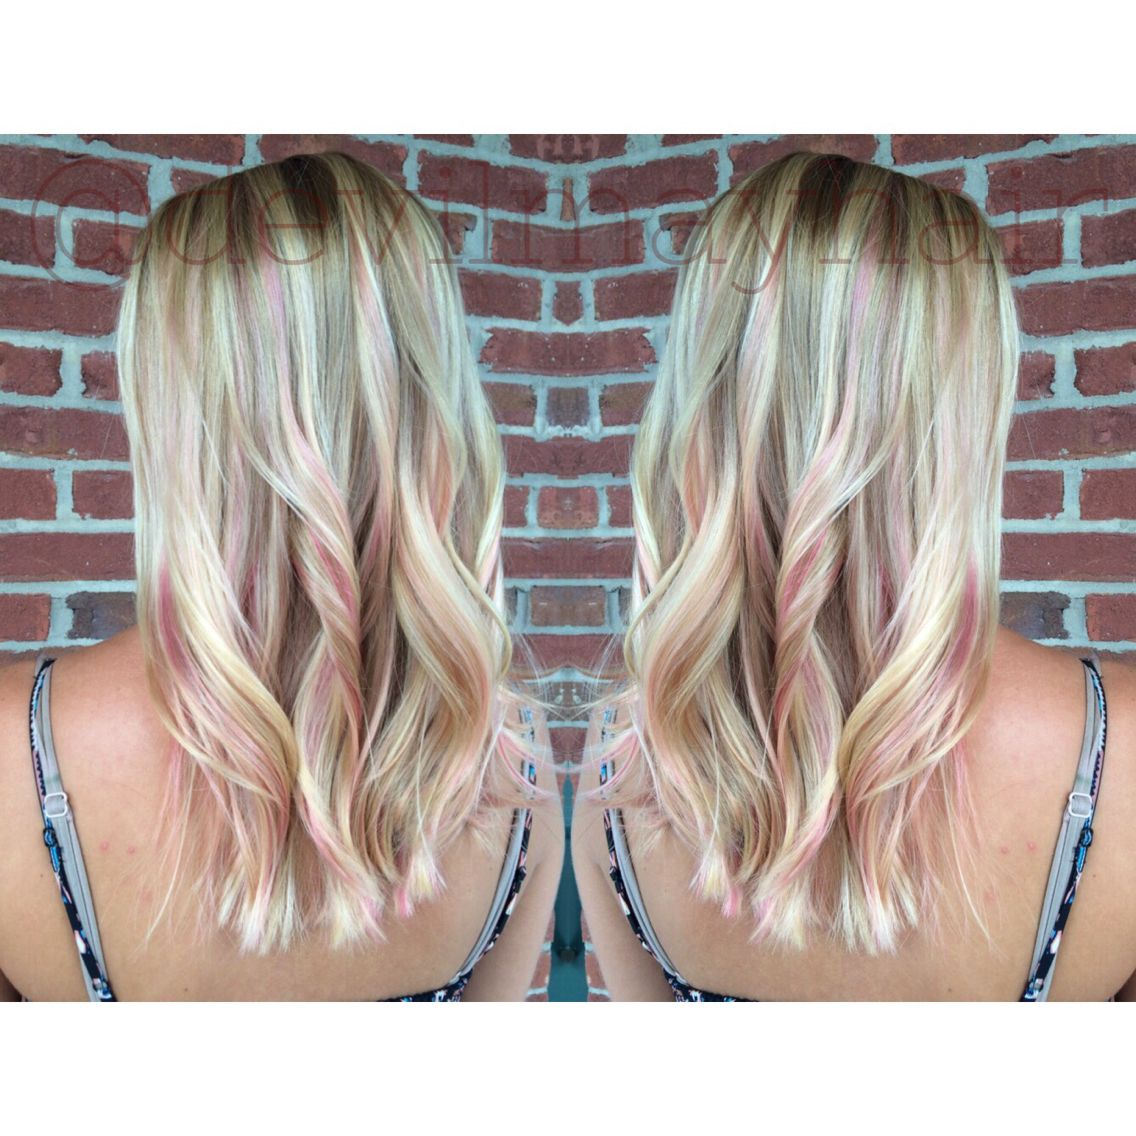 Soft Pink Peekaboo Highlights On This Pretty Blonde With Images